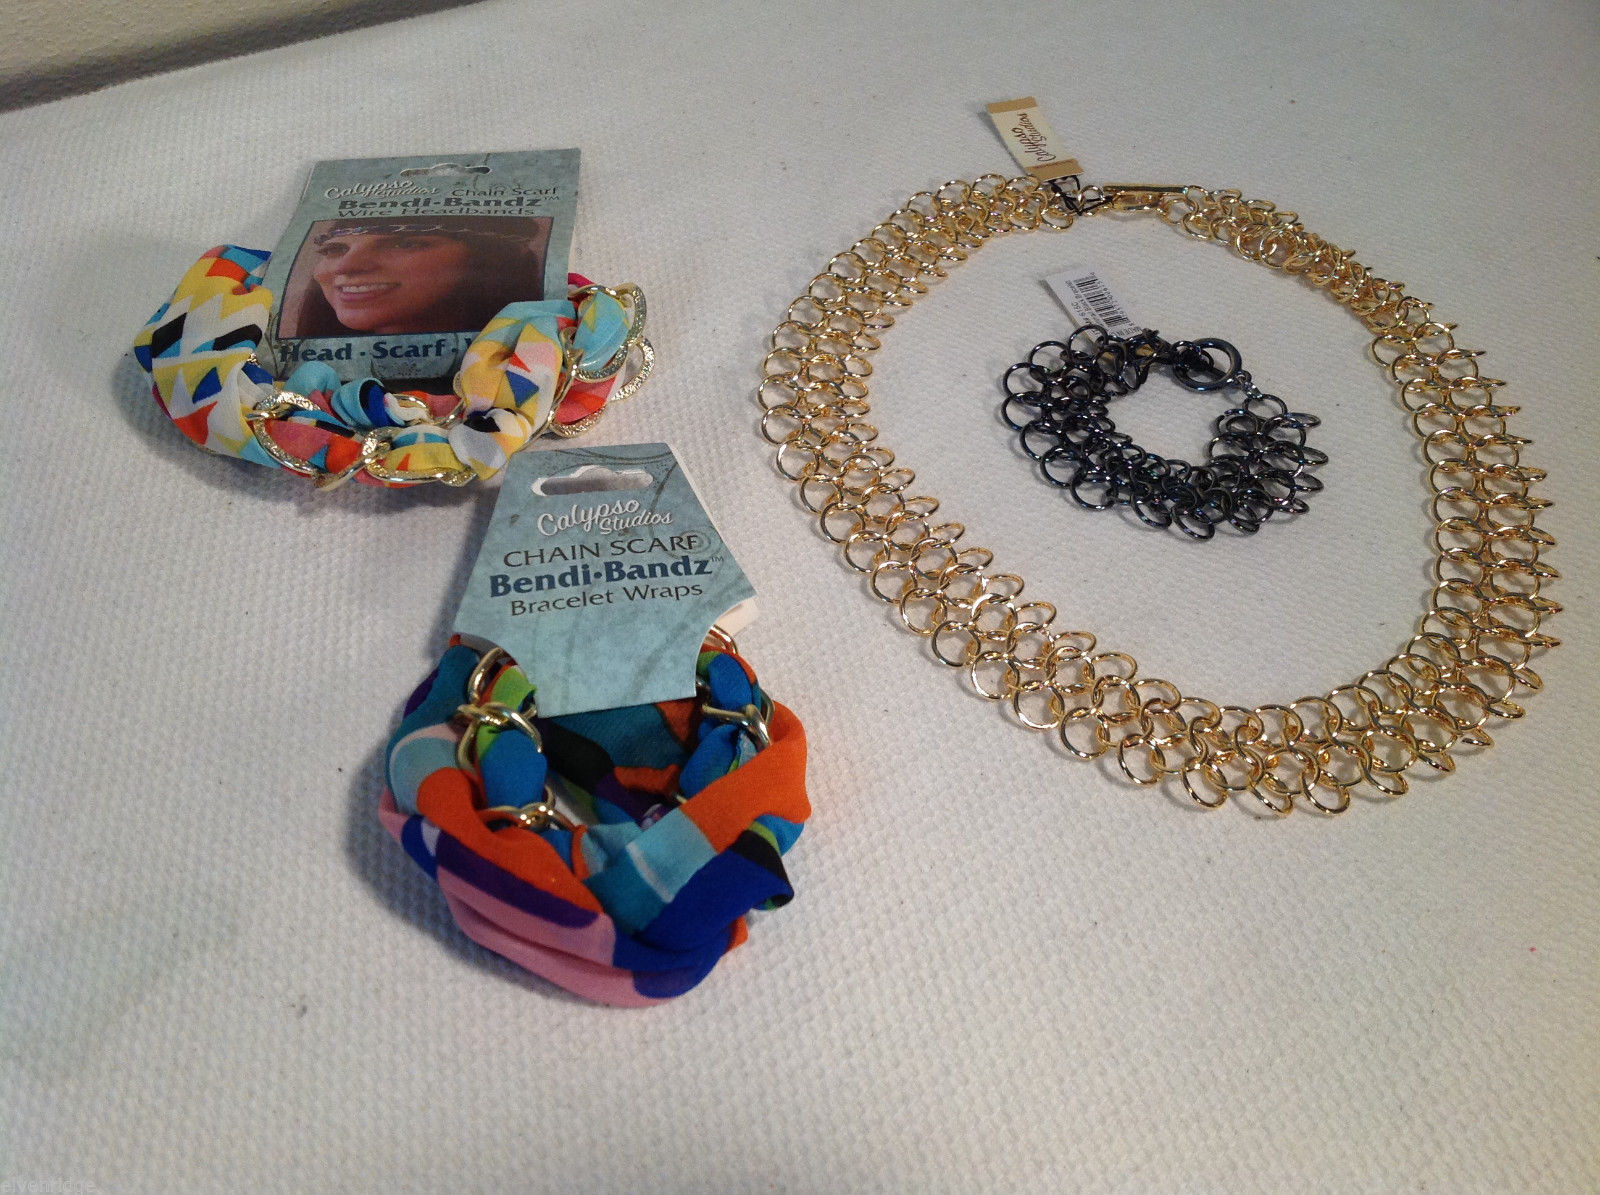 Lot of 4 Calypso Studios - Bendi-bands Headband Bracelet Necklace Chainmail